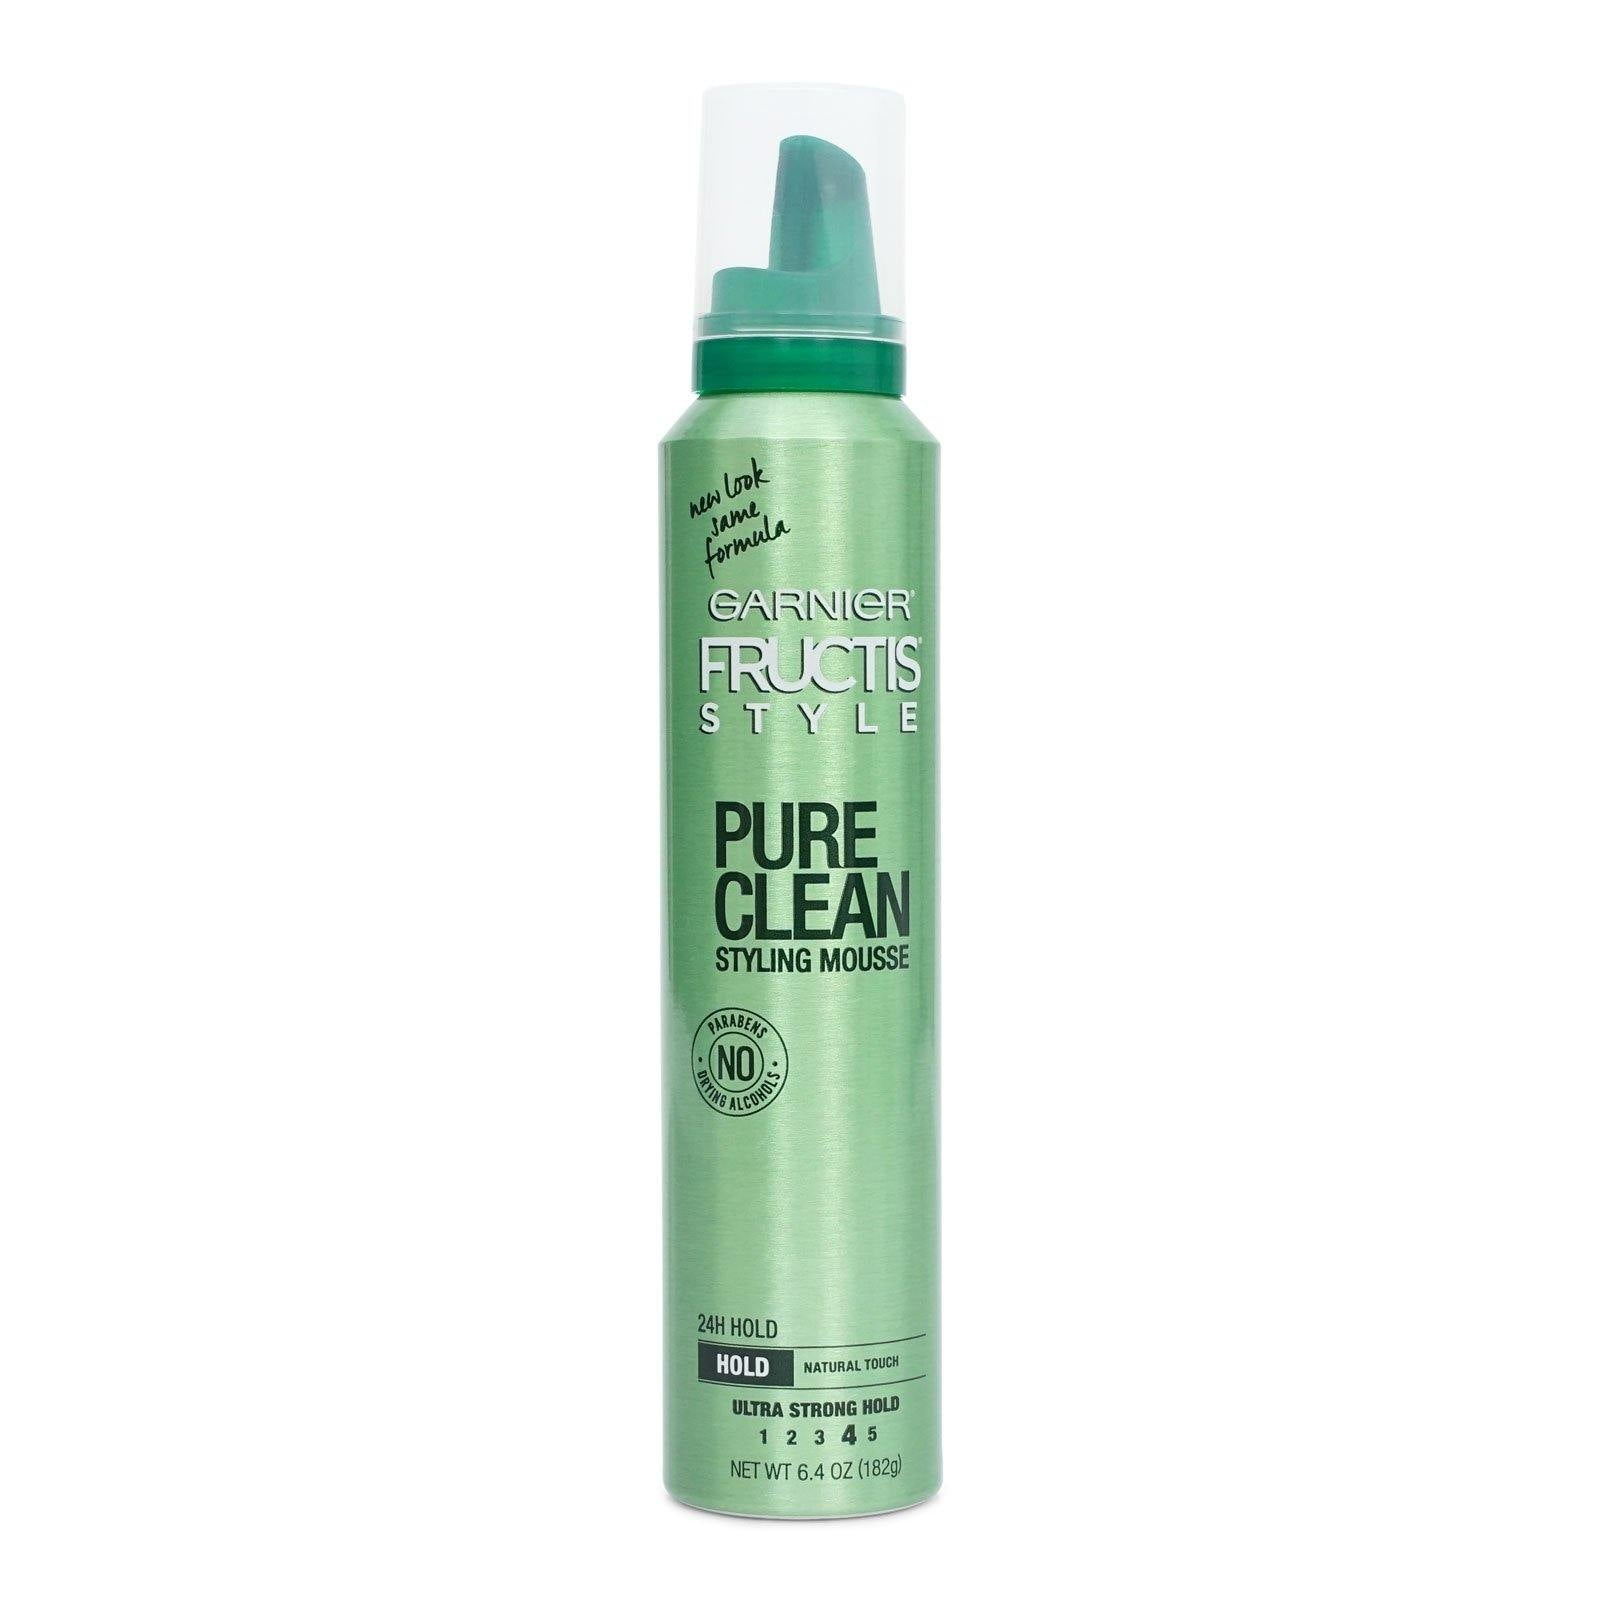 GARNIER PURE CLEAN STYLING MOUSSE